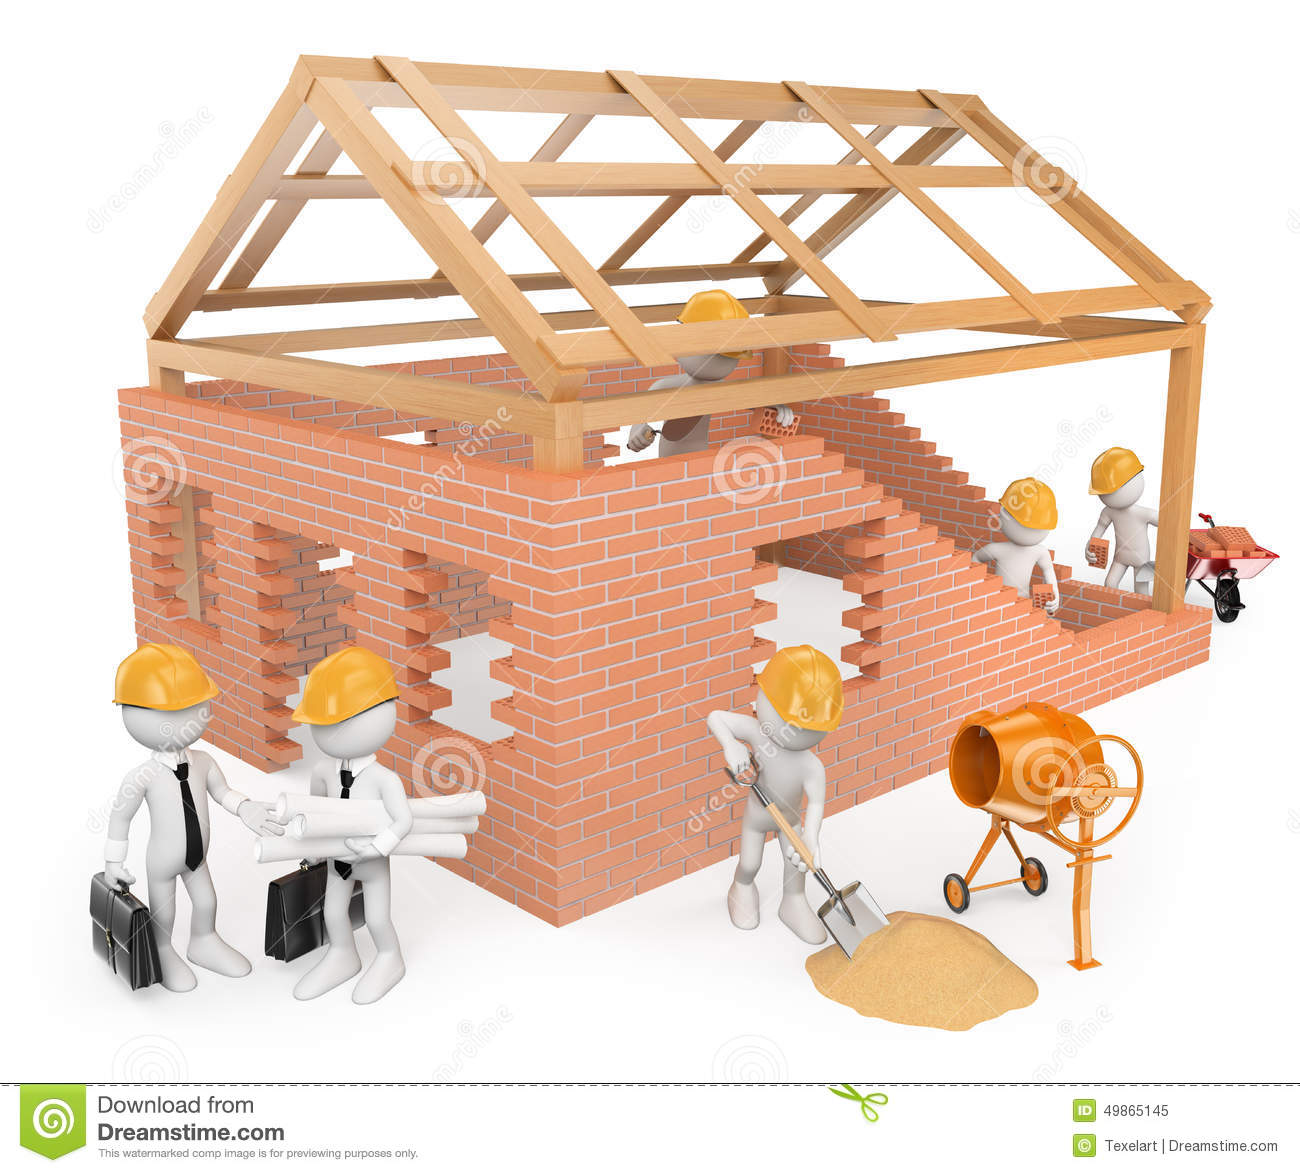 Building A House 3d white people. construction workers building a house stock